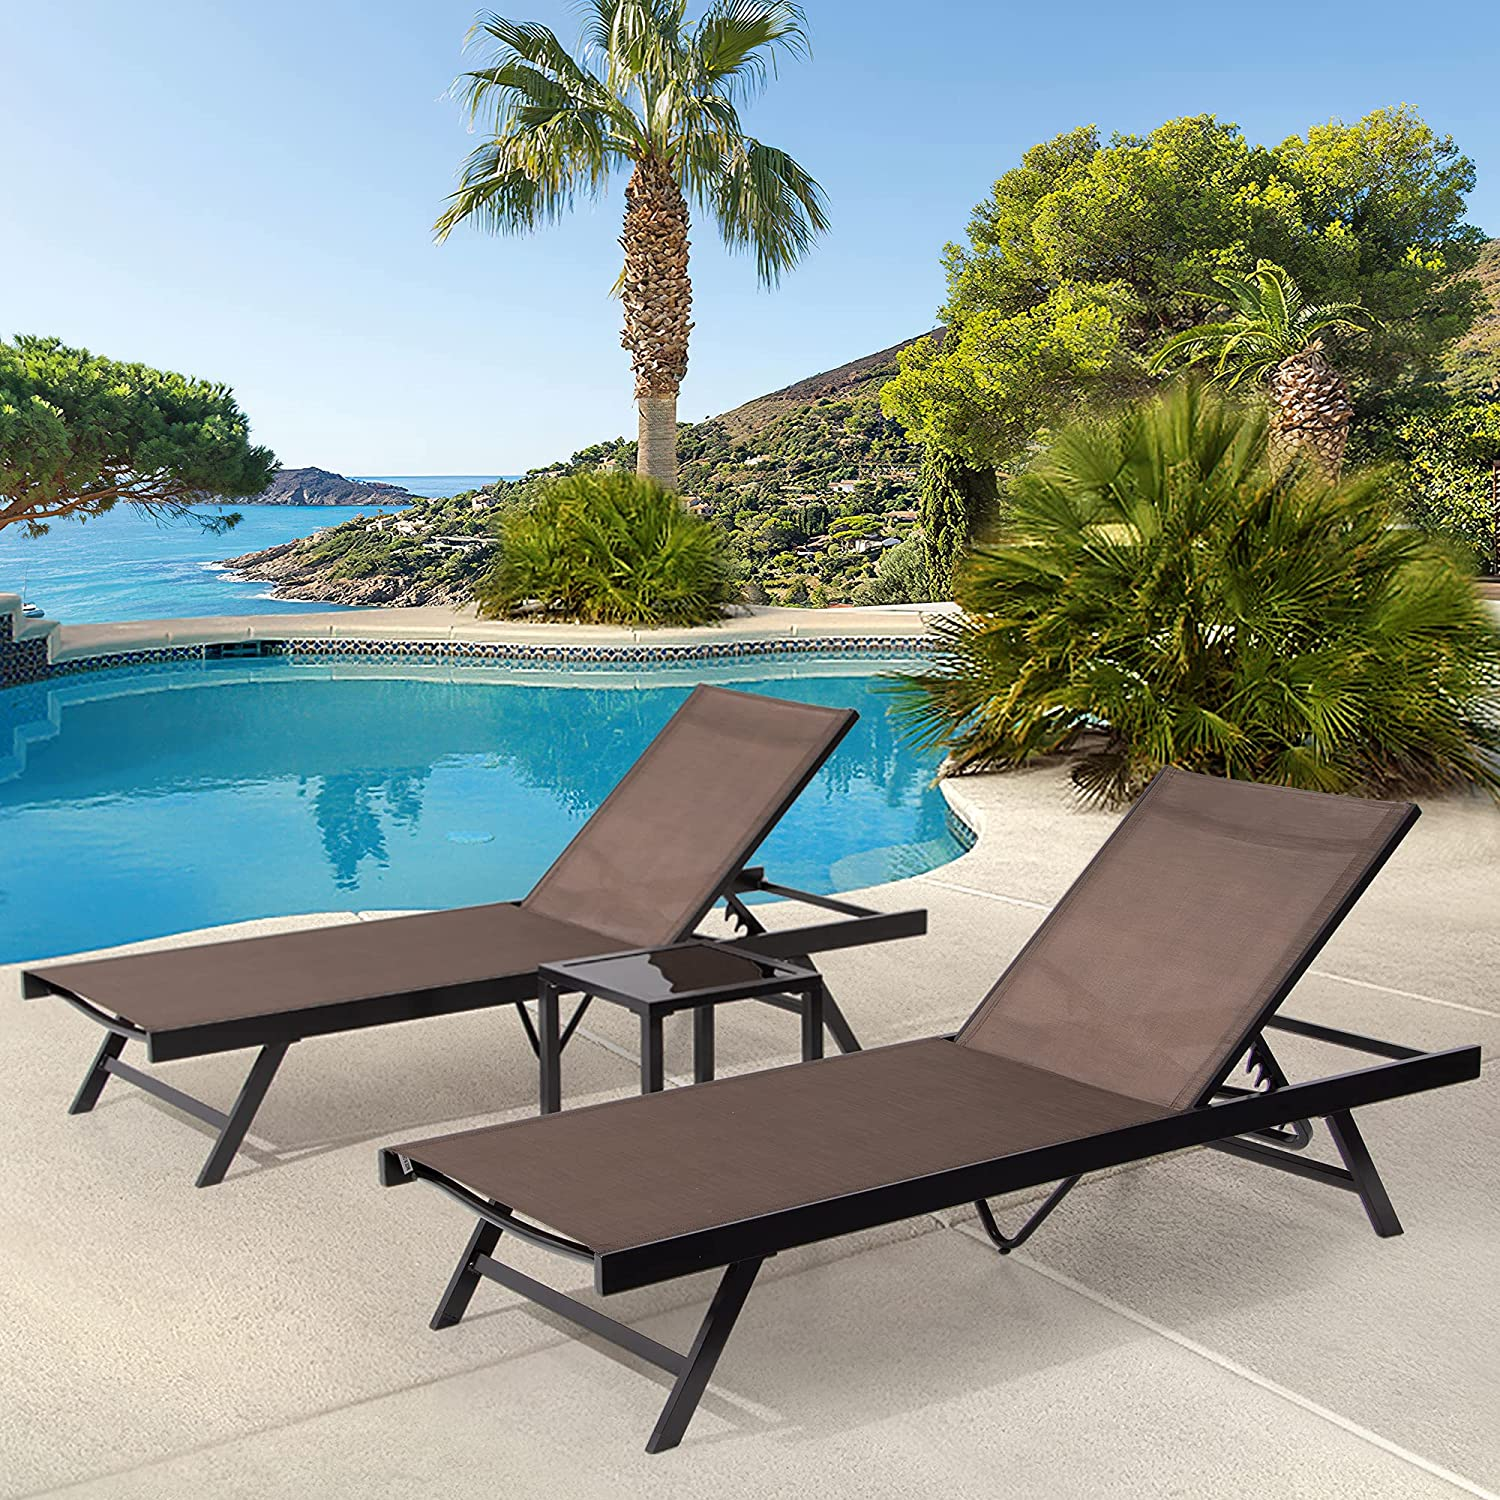 Ranking TOP17 Pellebant Adjustable We OFFer at cheap prices Aluminum Patio Chaise with Tab Lounge Chair